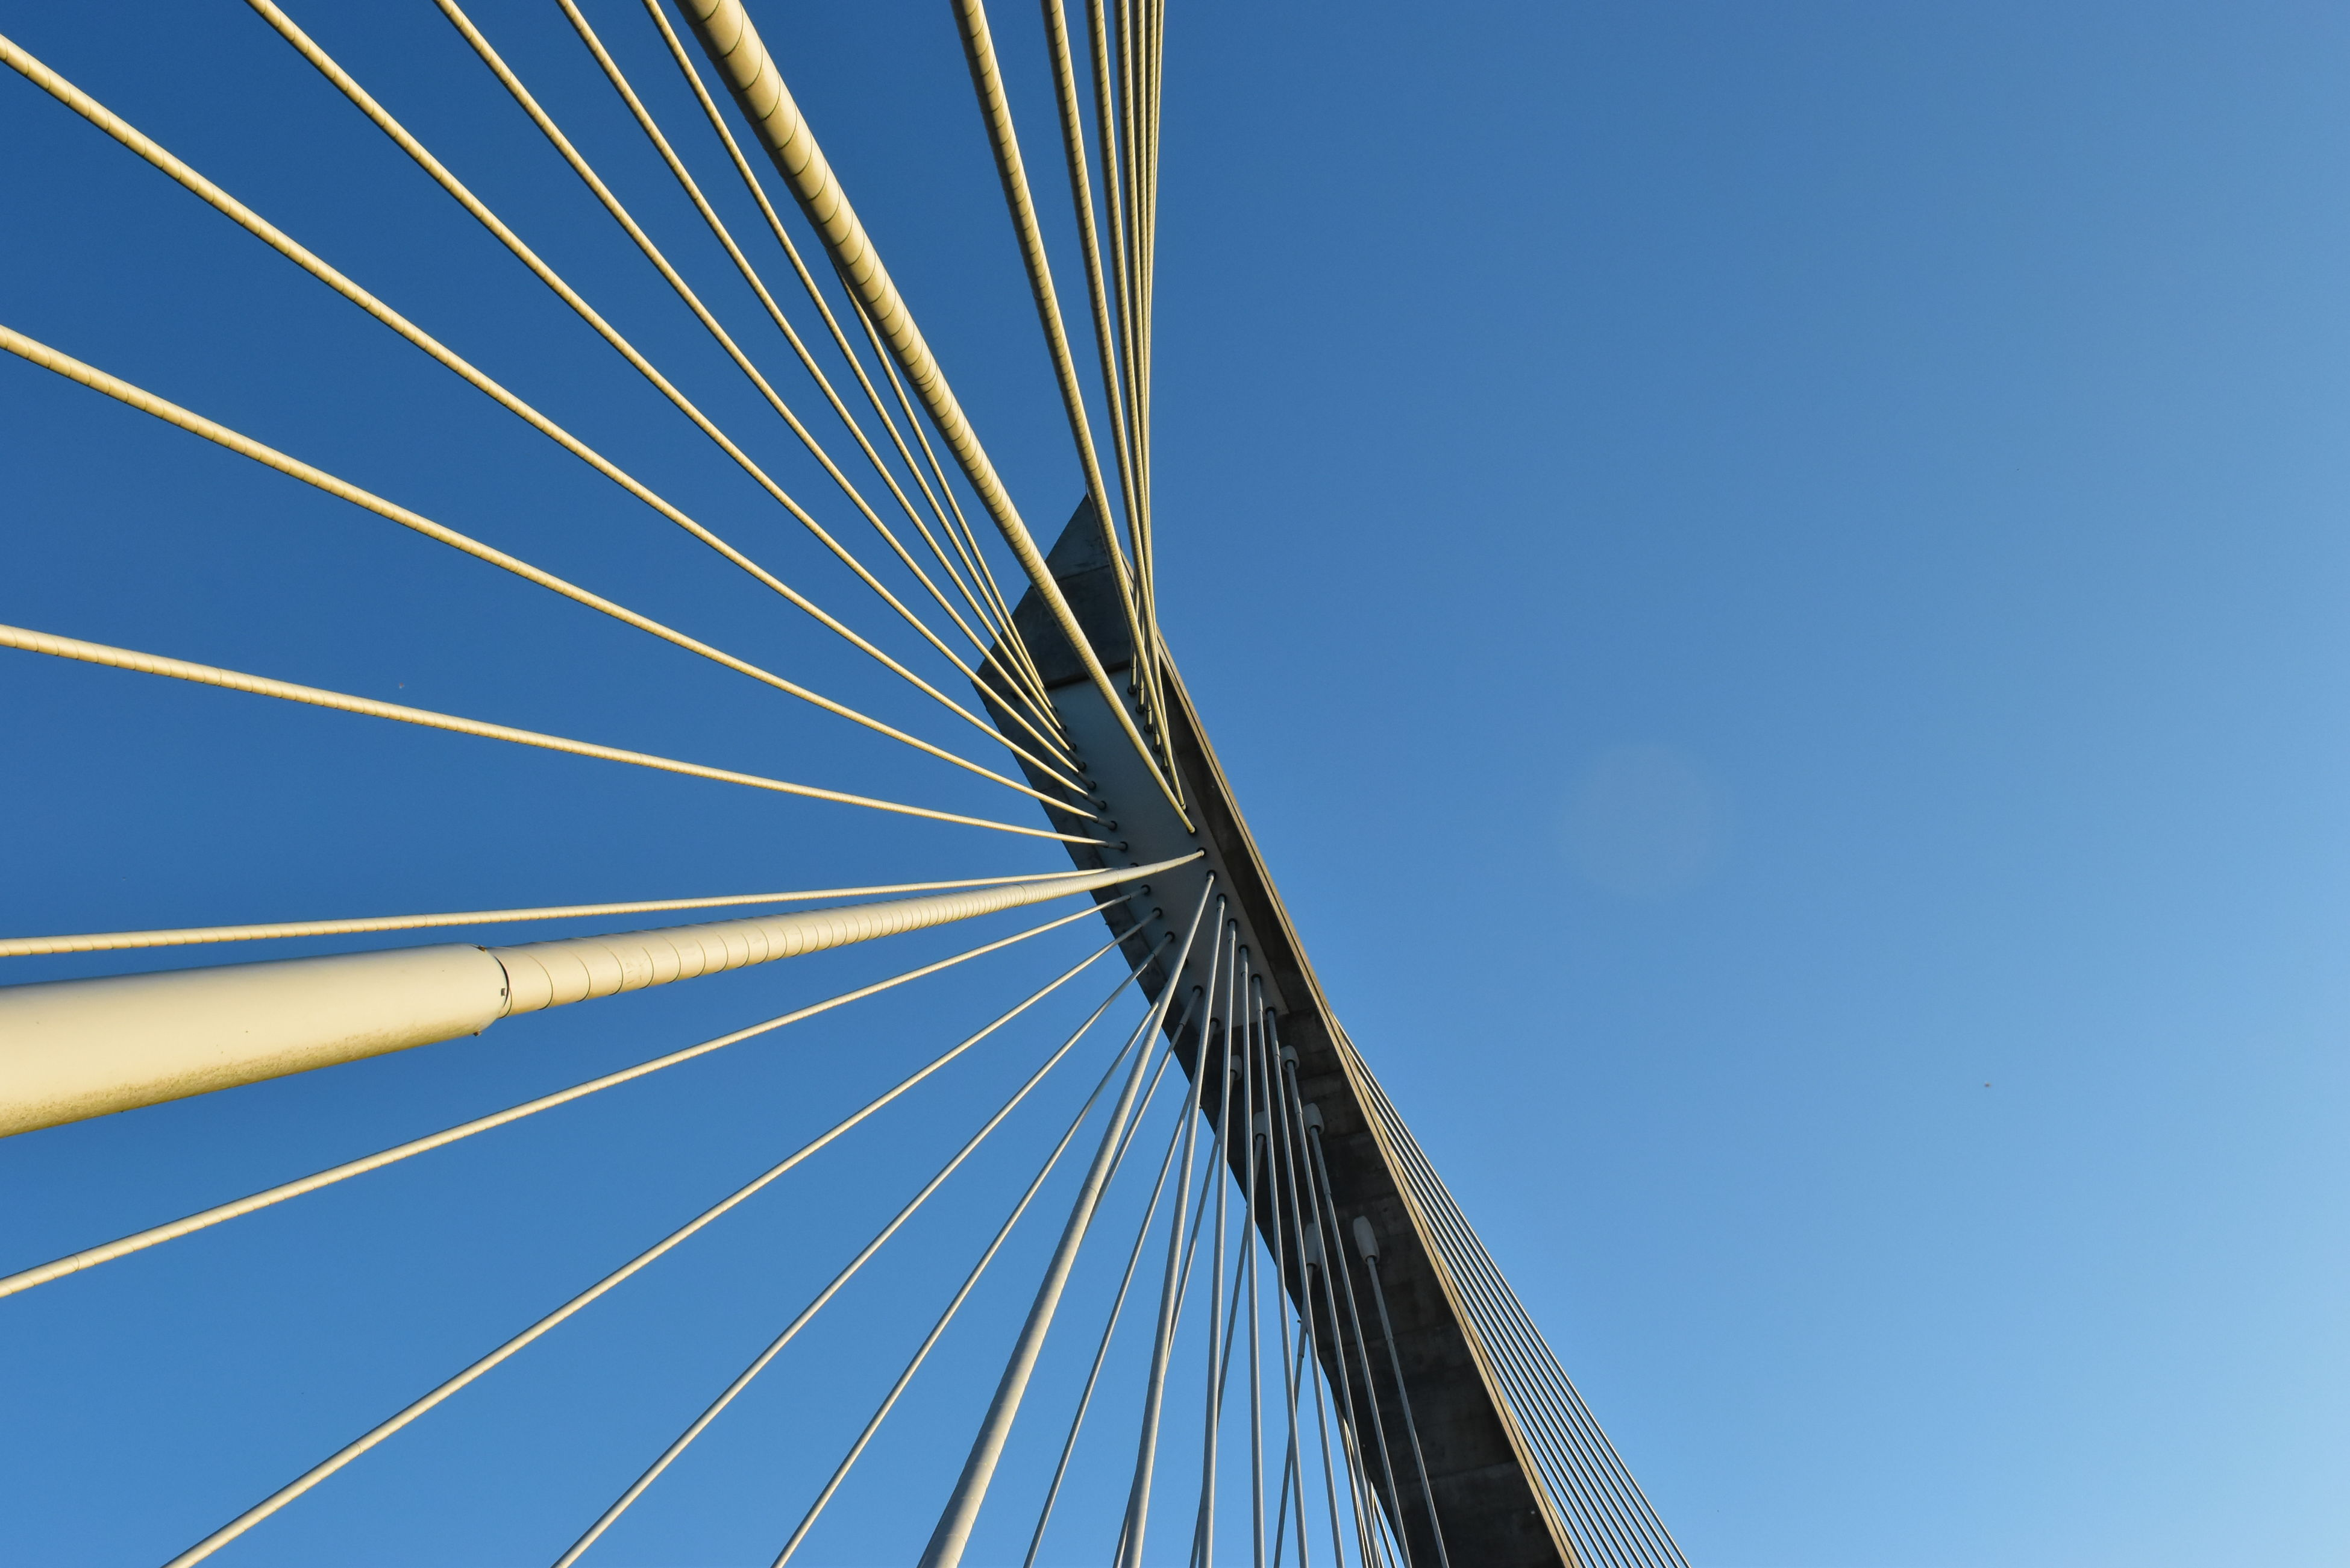 low angle view, clear sky, blue, sky, connection, built structure, transportation, no people, outdoors, architecture, day, bridge - man made structure, suspension bridge